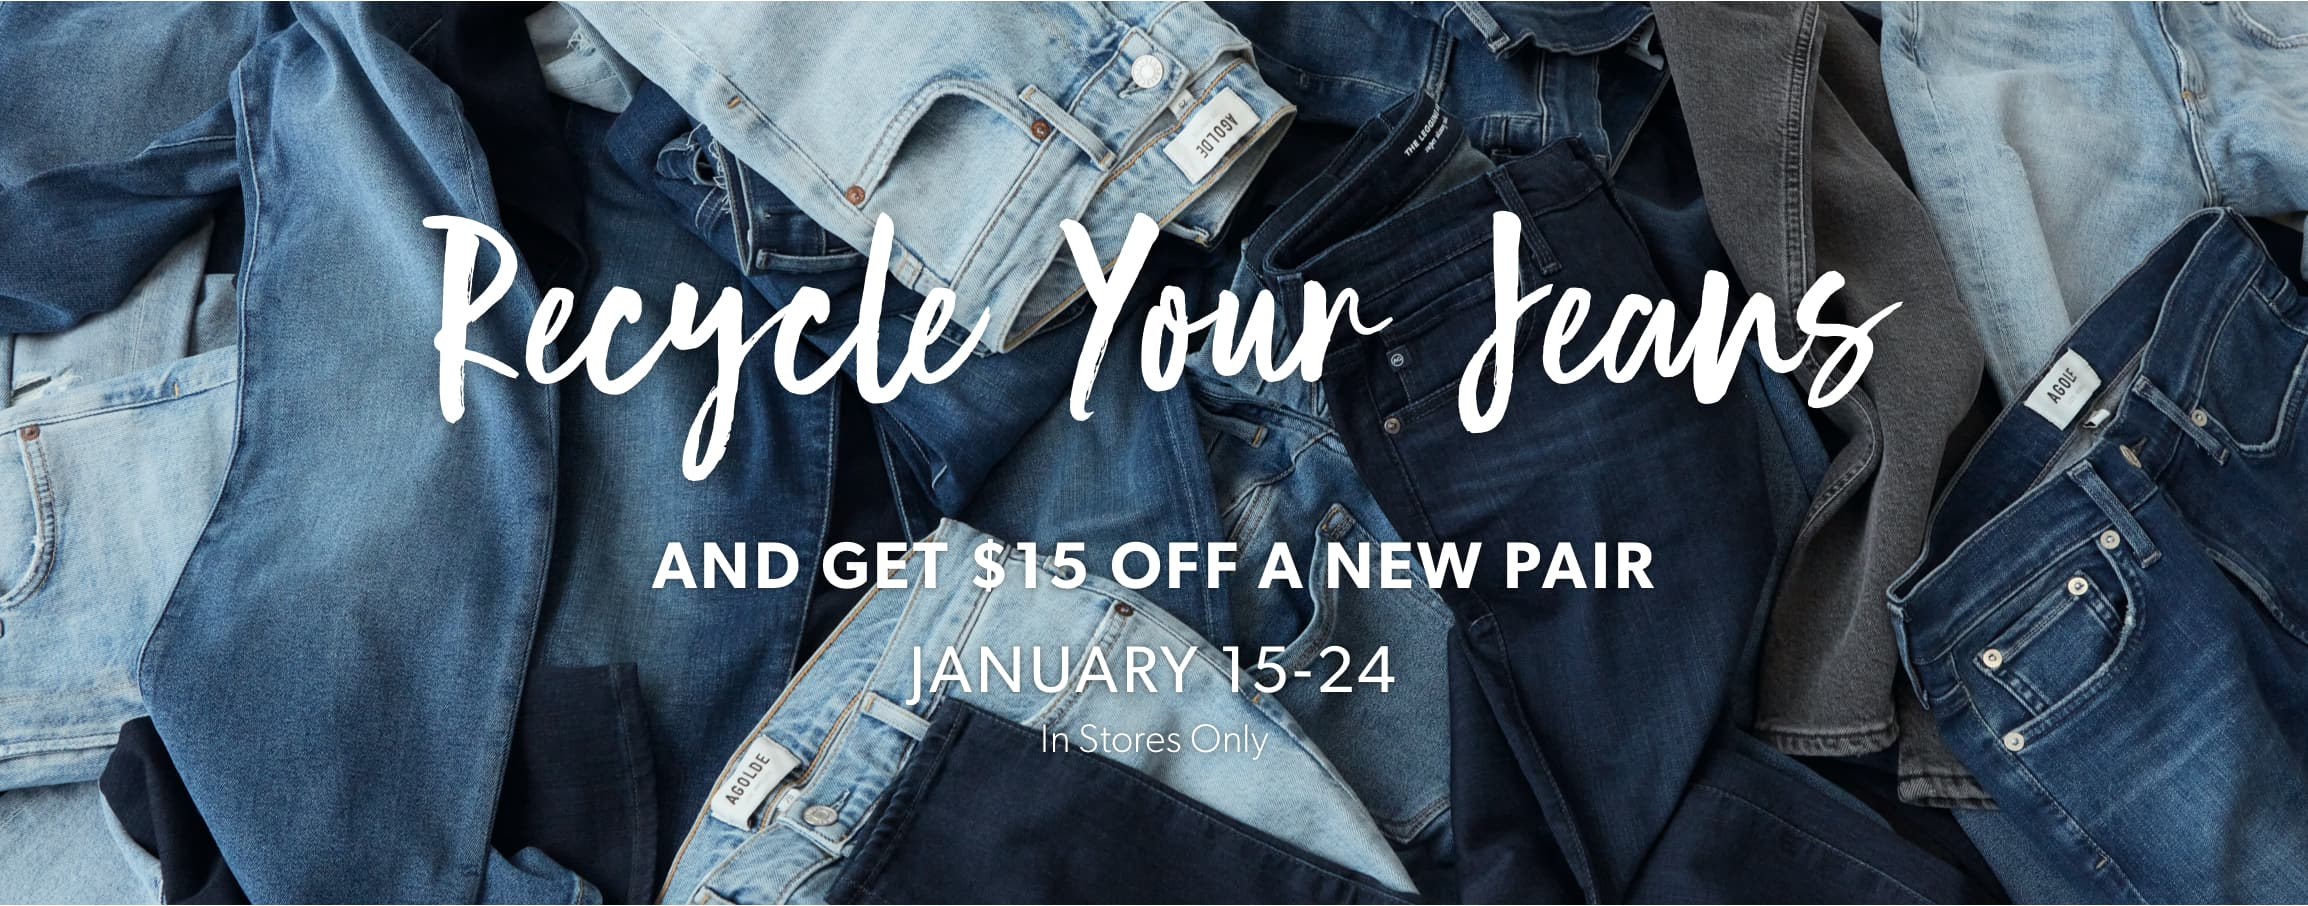 Recycle your jeans and get $15 off a new pair. January 15-24. In stores only.